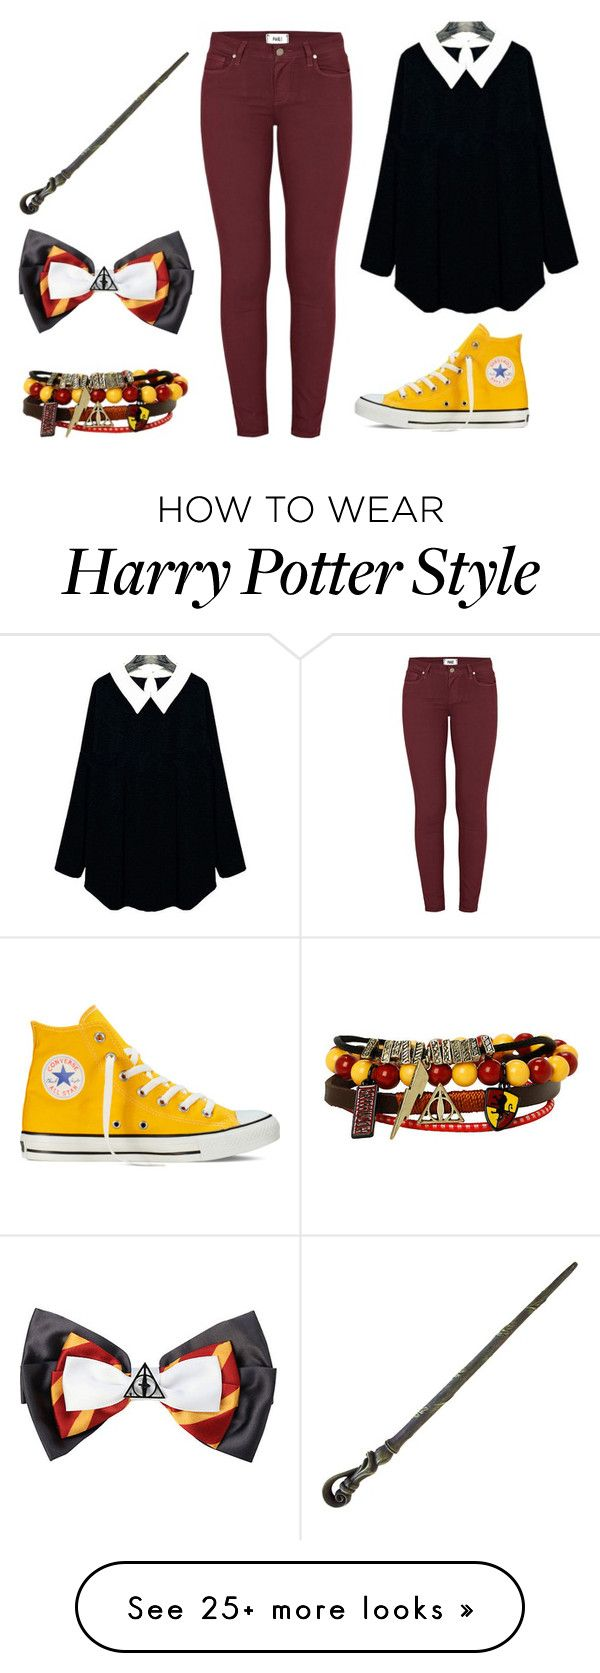 """Gryffindor"" by bandumb on Polyvore featuring Converse, Paige Denim, harrypotter, hogwarts, Gryffindor and plus size clothing"